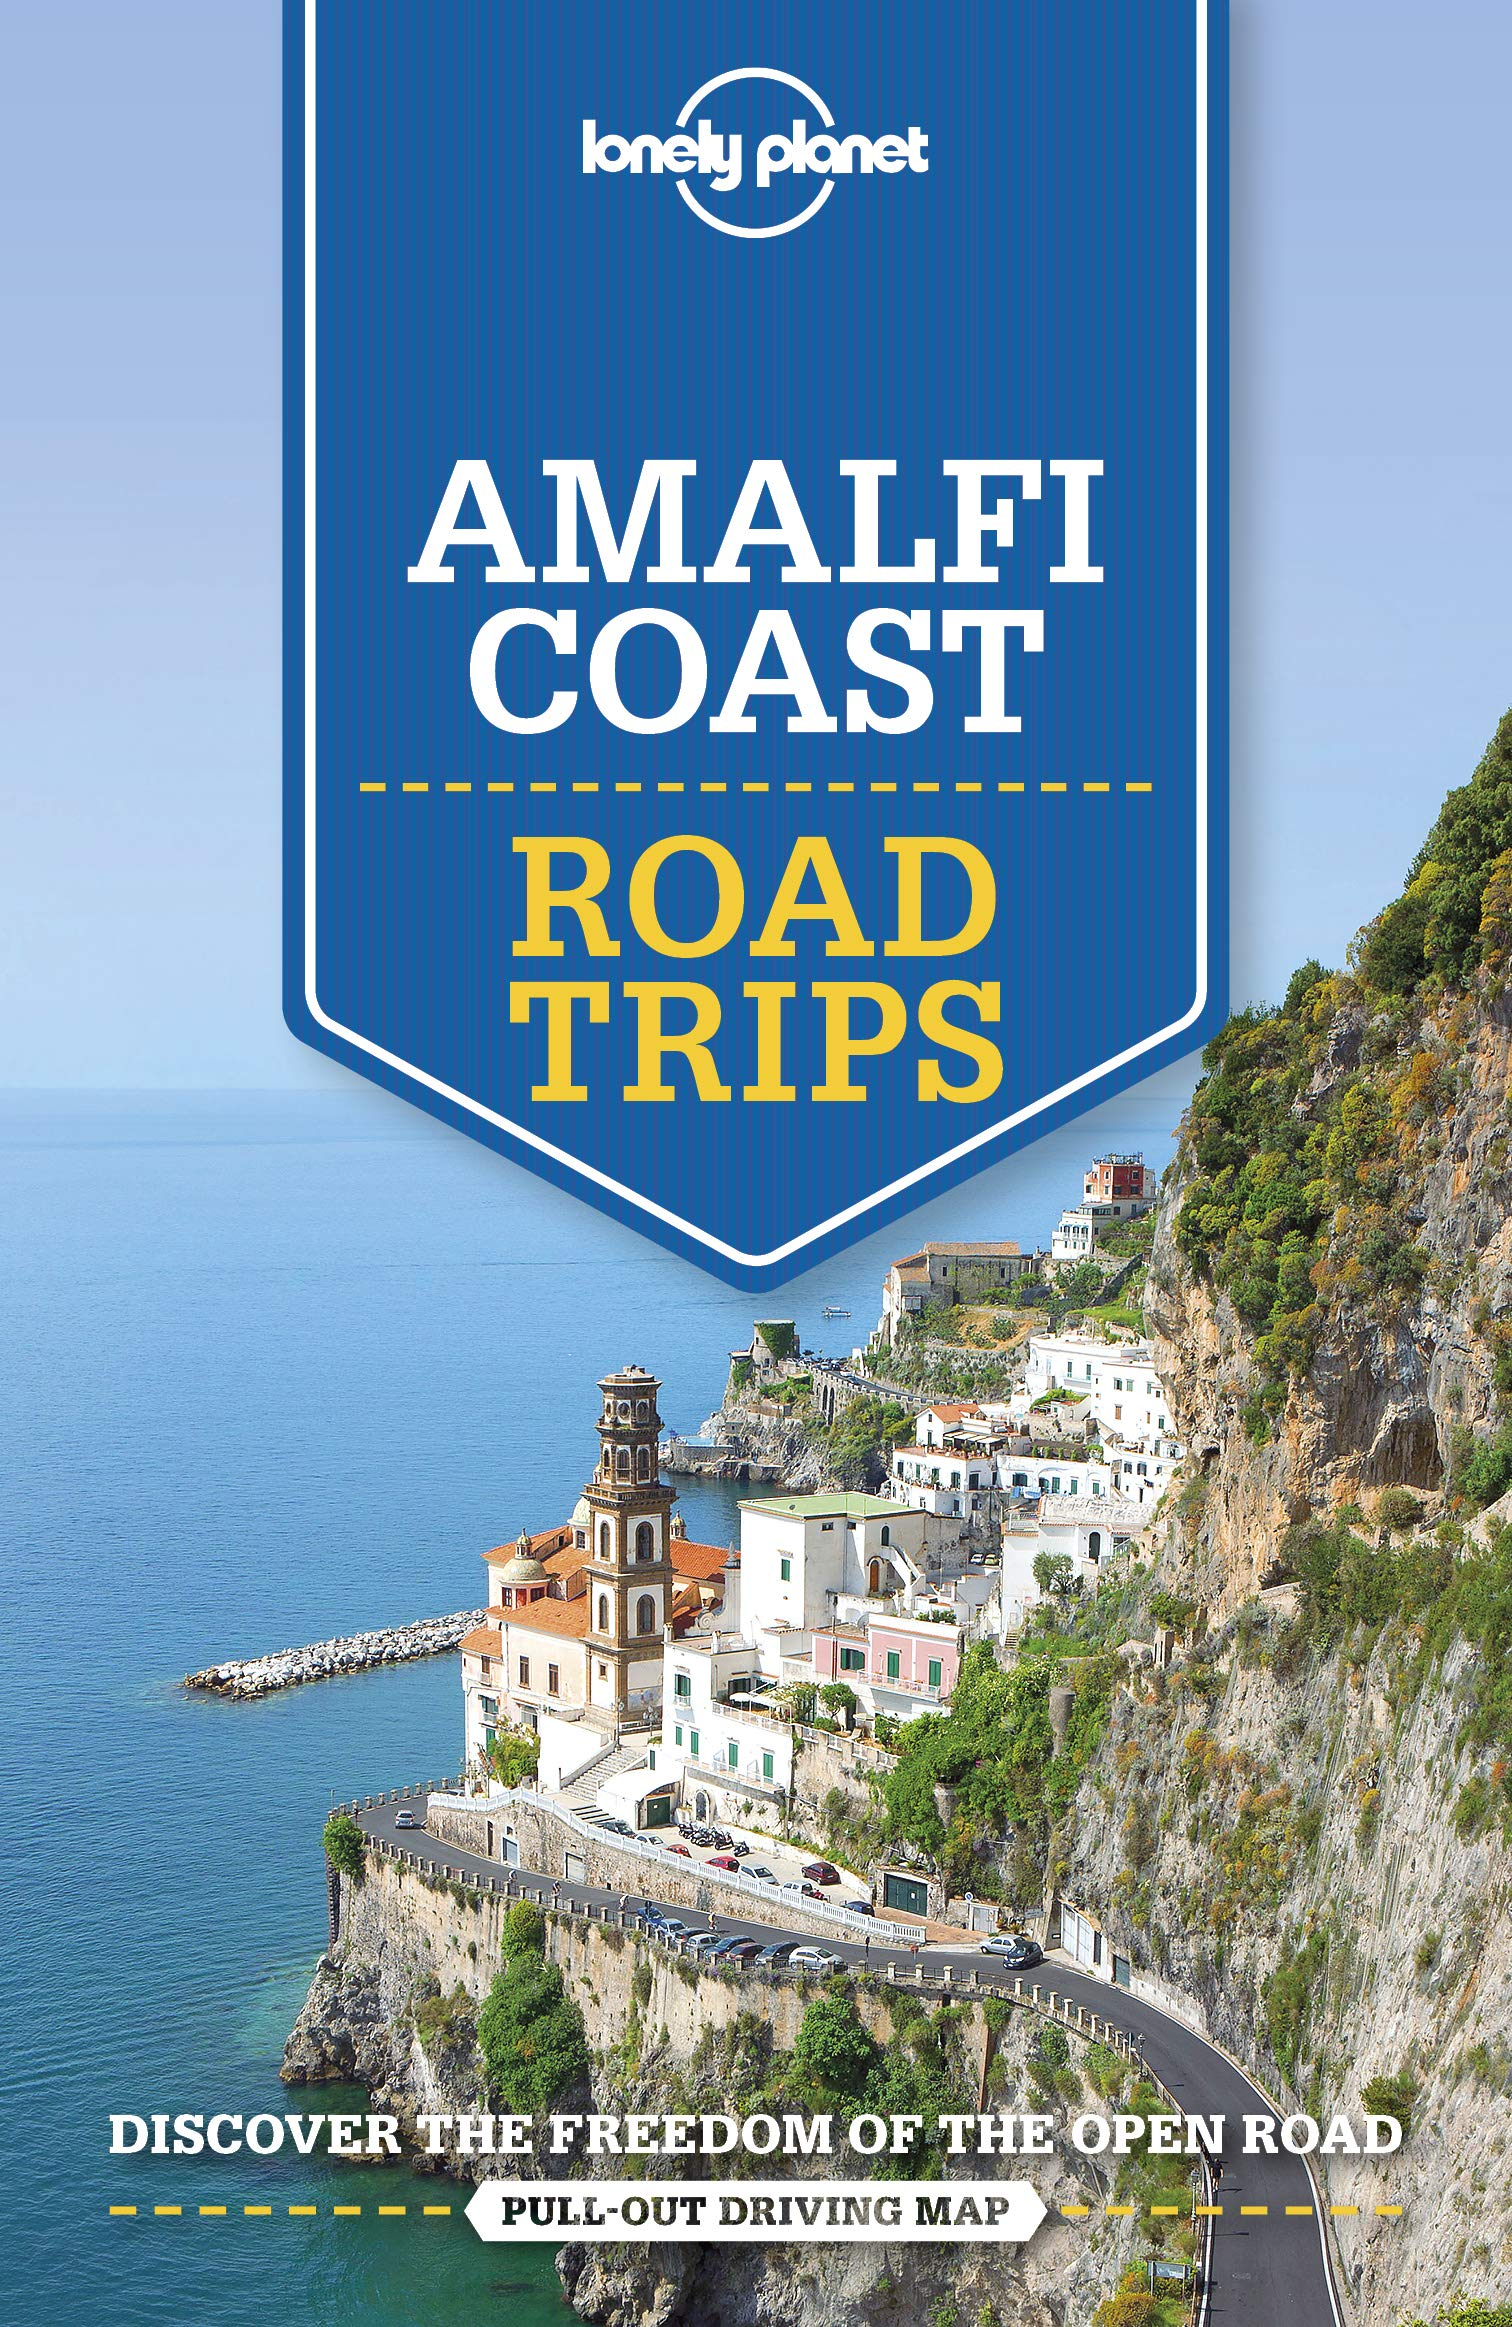 Amalfi Coast Lonely Planet Road Trips 9781786575685  Lonely Planet Road Trips  Reisgidsen Napels, Amalfi, Campanië